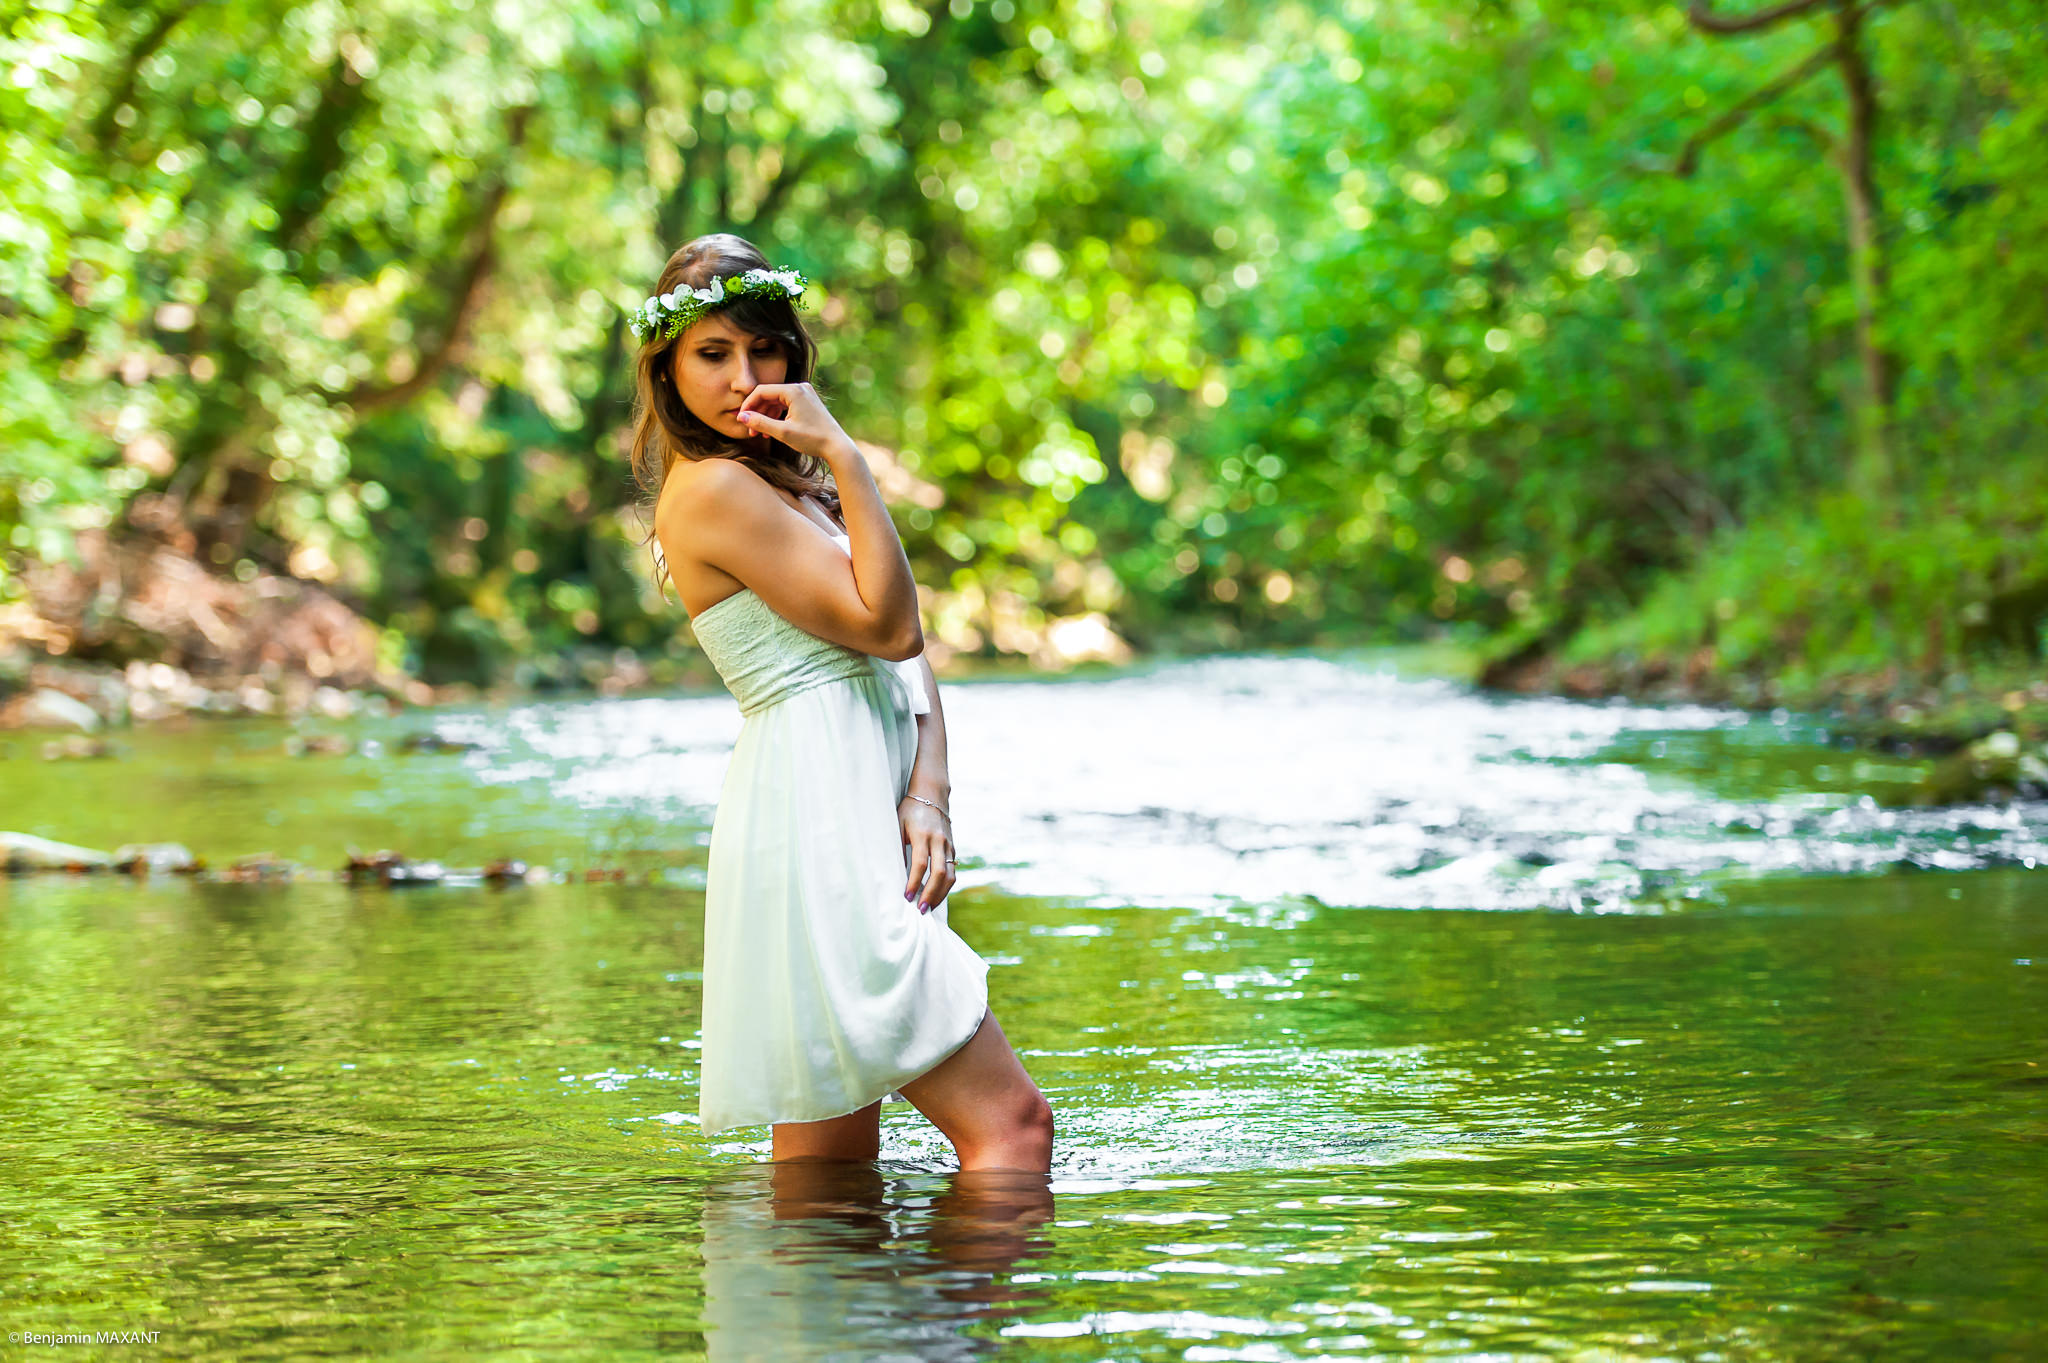 Sweet river photo shoot with Keky